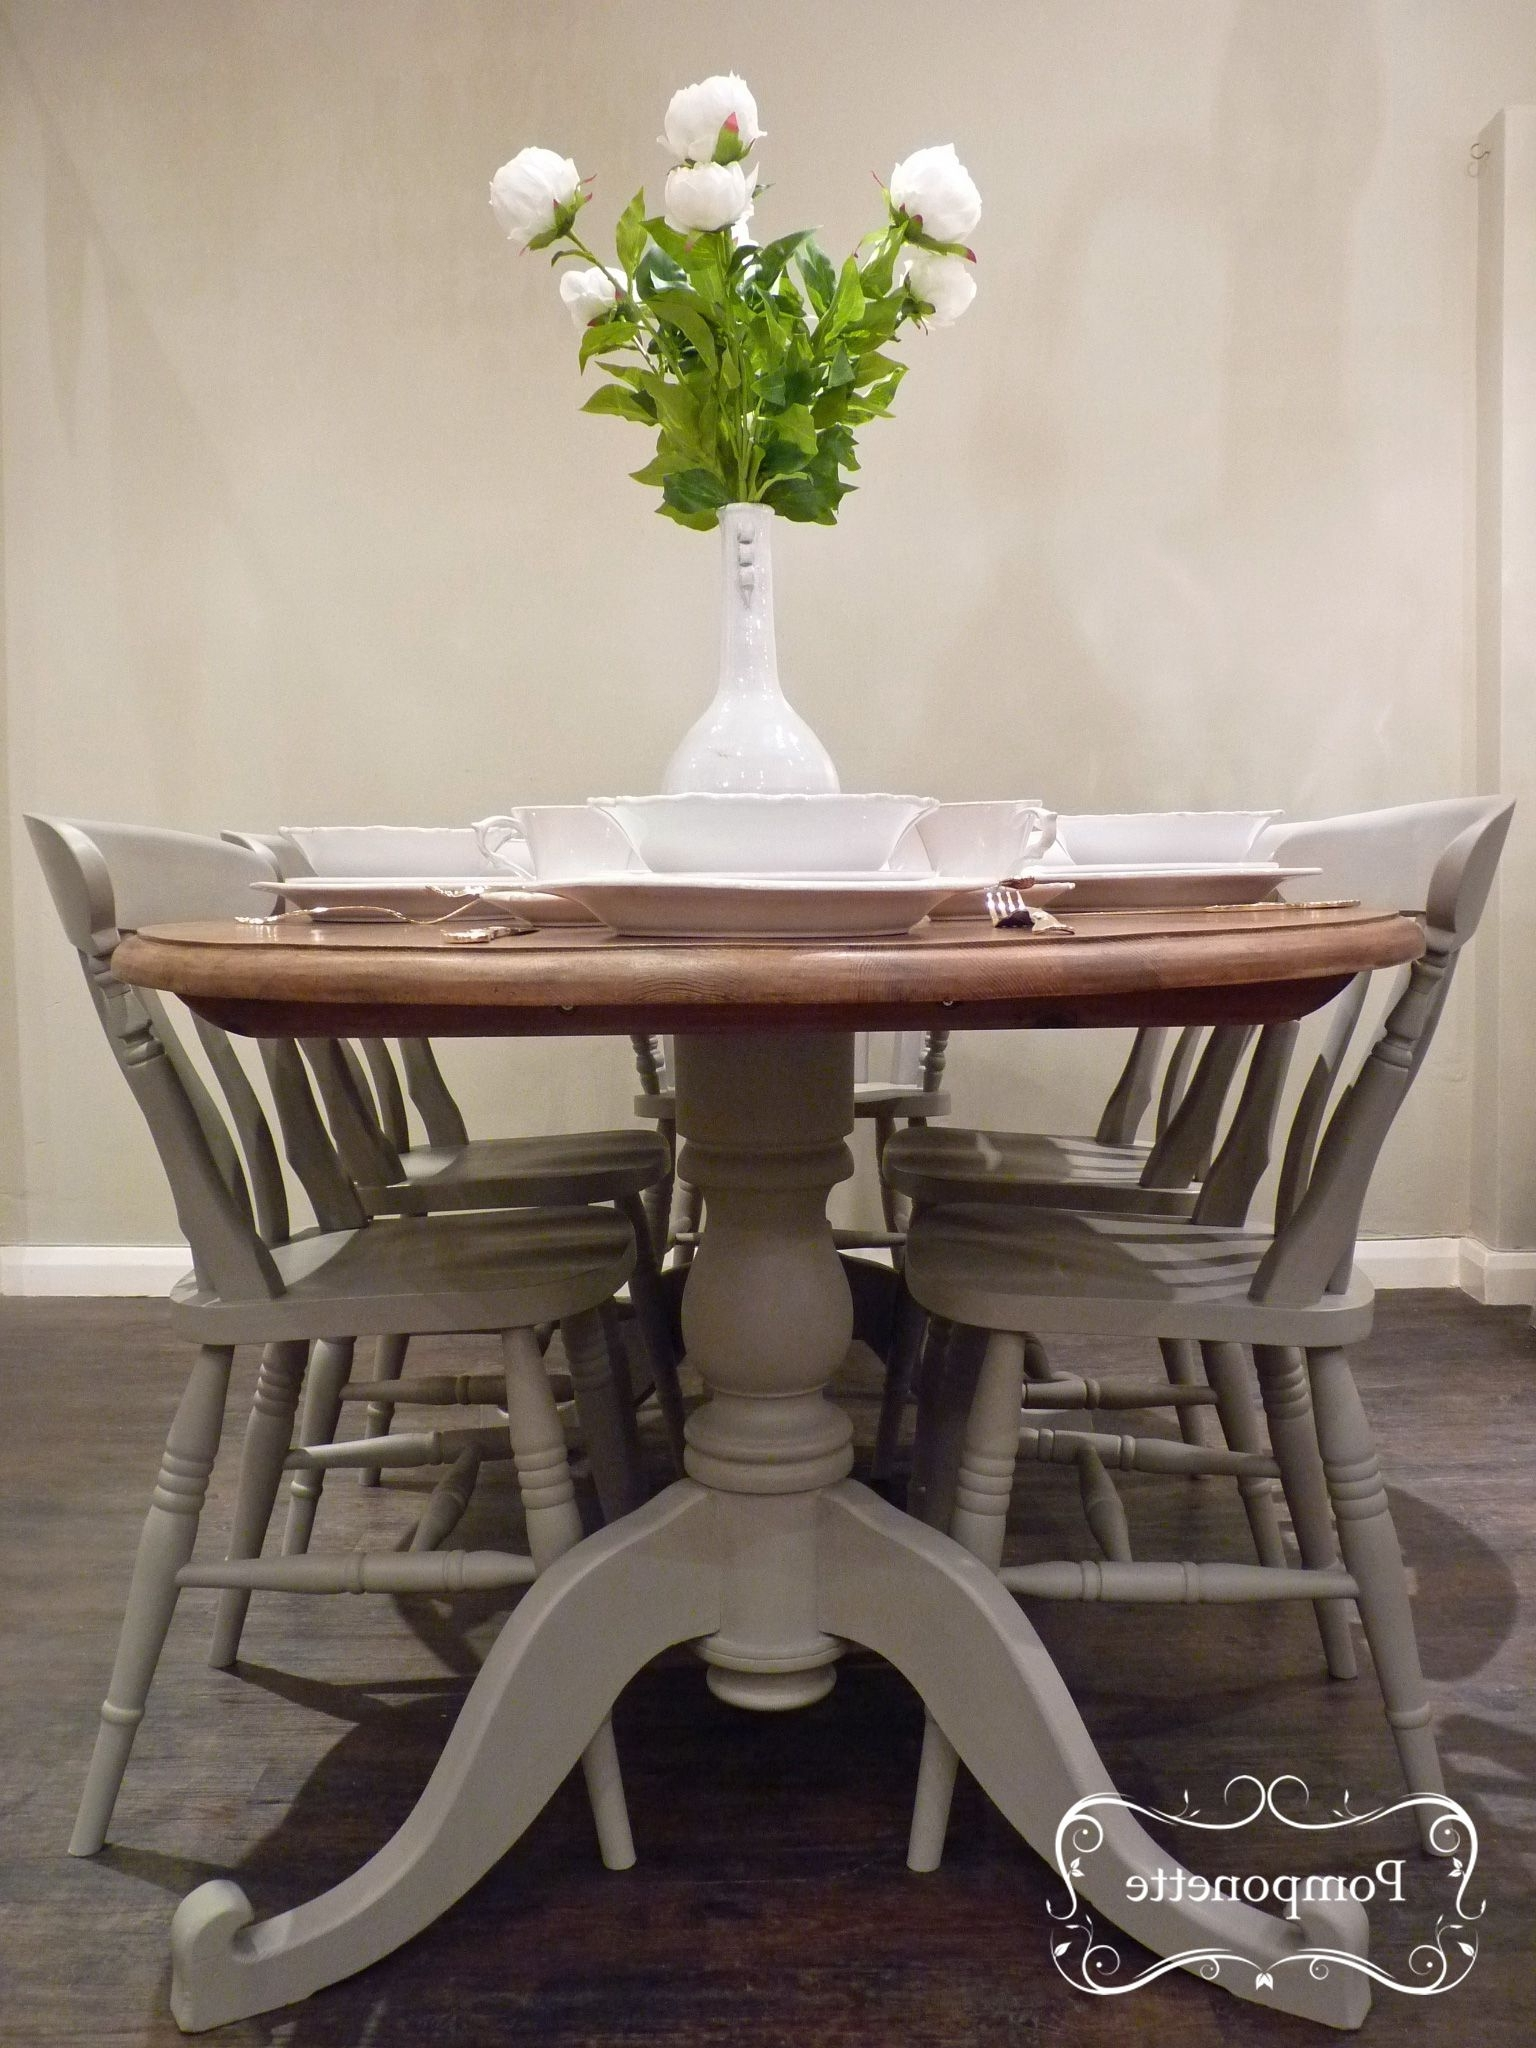 Dining Tables And Six Chairs for Well known Oval Dining Table And Six Chairs. Pedestal Detail. @anniesloanhome